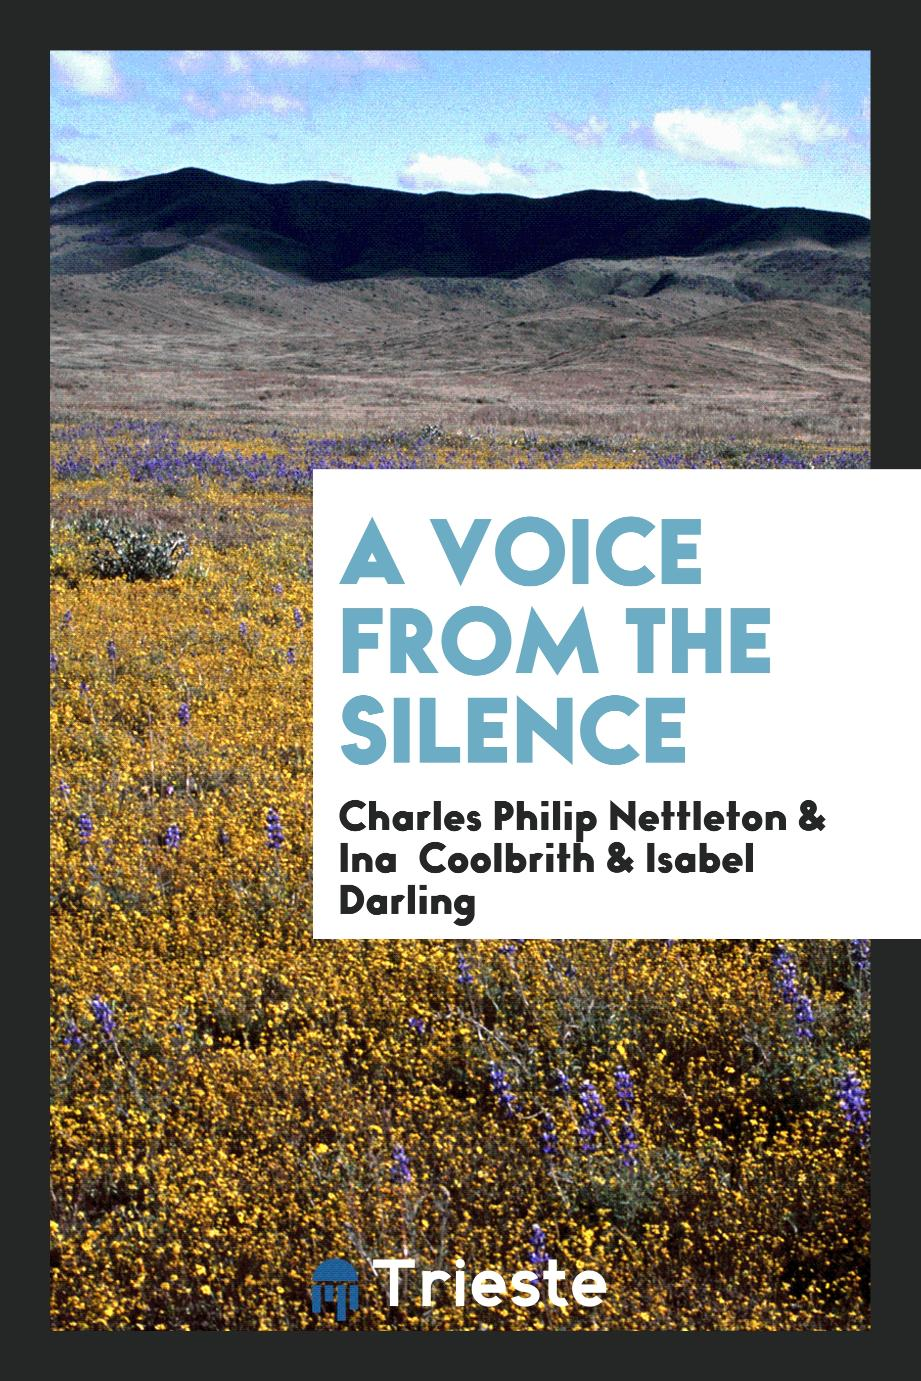 A Voice from the Silence